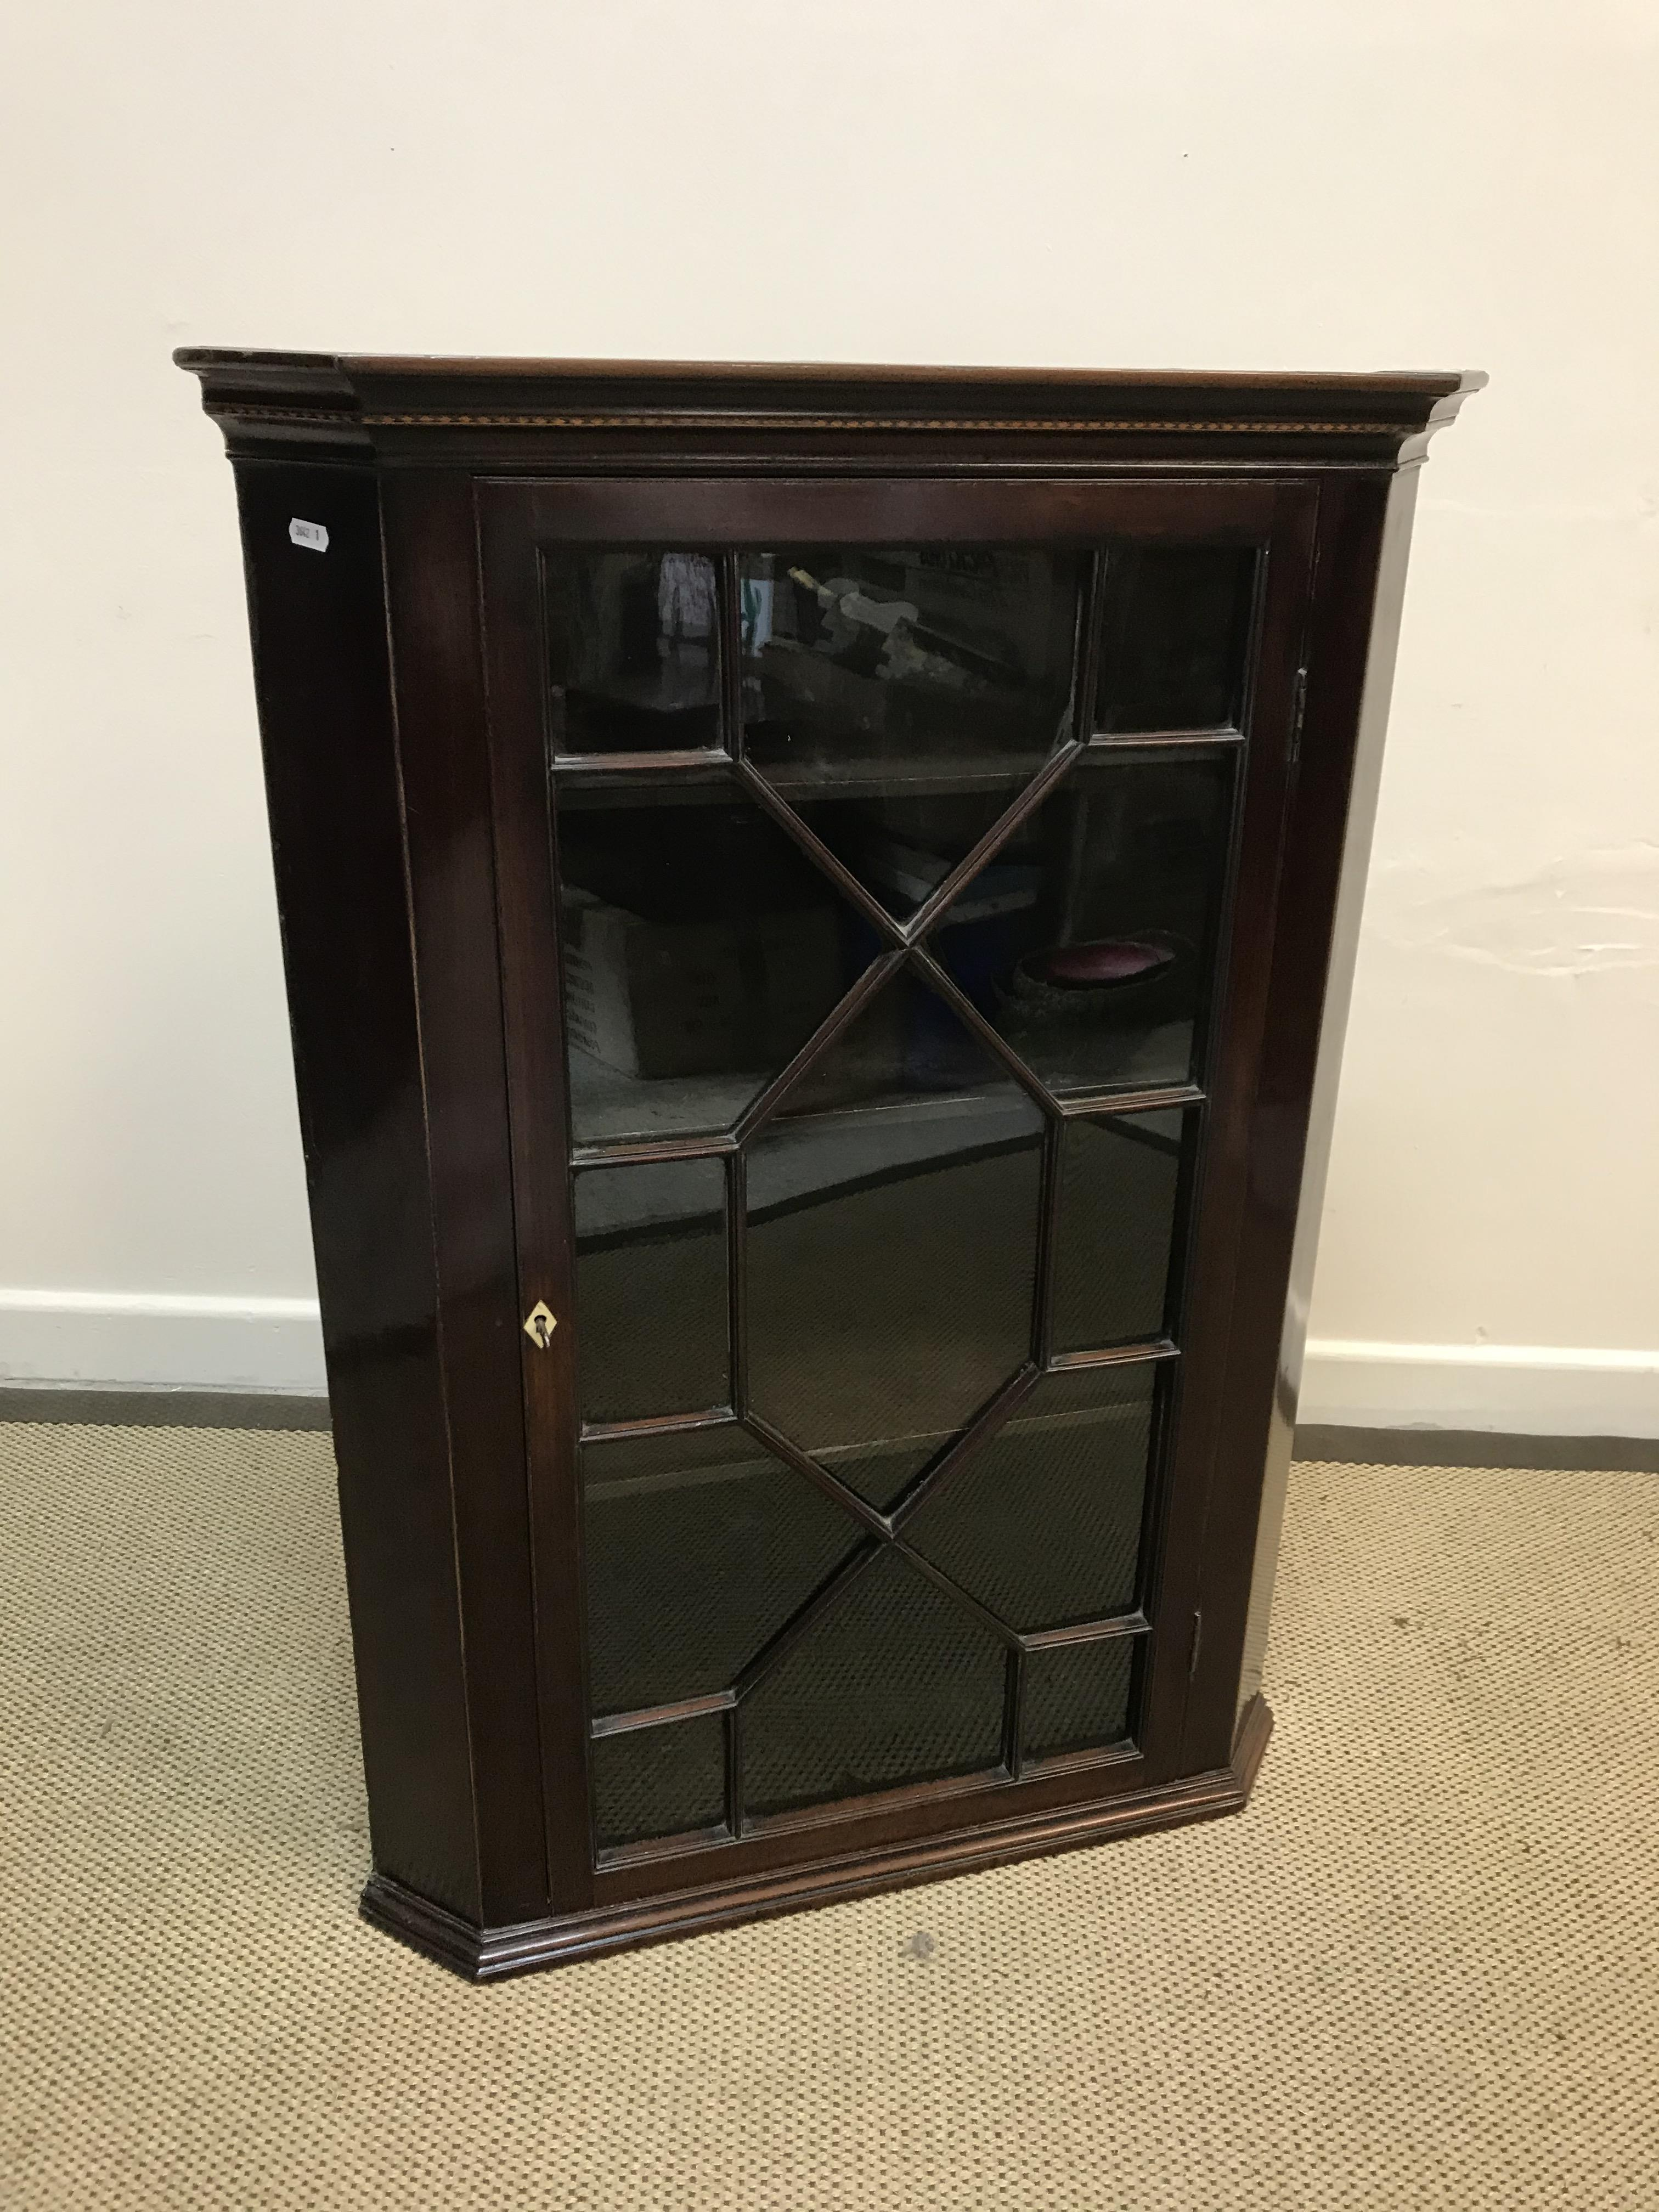 An early 19th Century mahogany hanging corner cabinet, the moulded cornice with lozenge inlaid